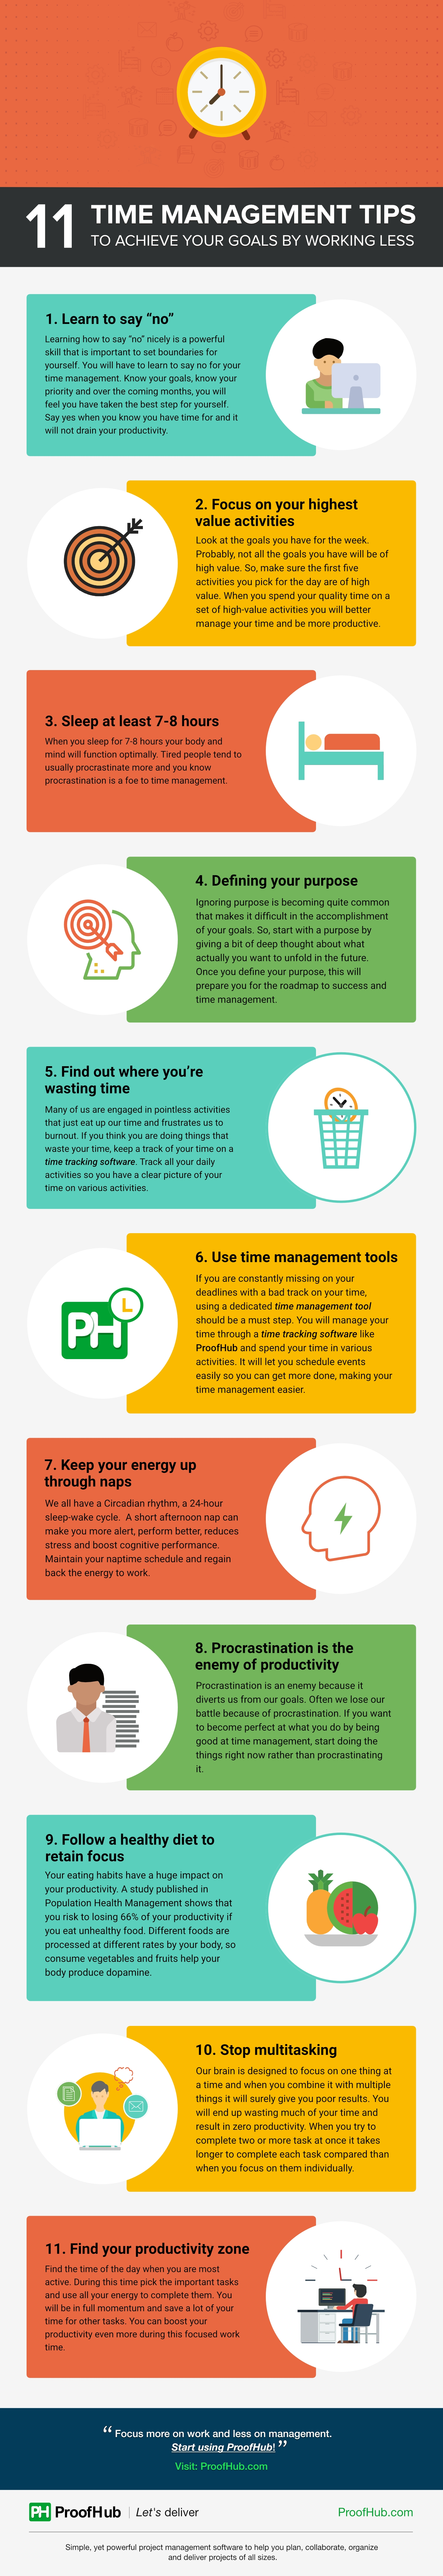 11 Time Management Tips To Achieve Your Goals By Working Less [Infographic]